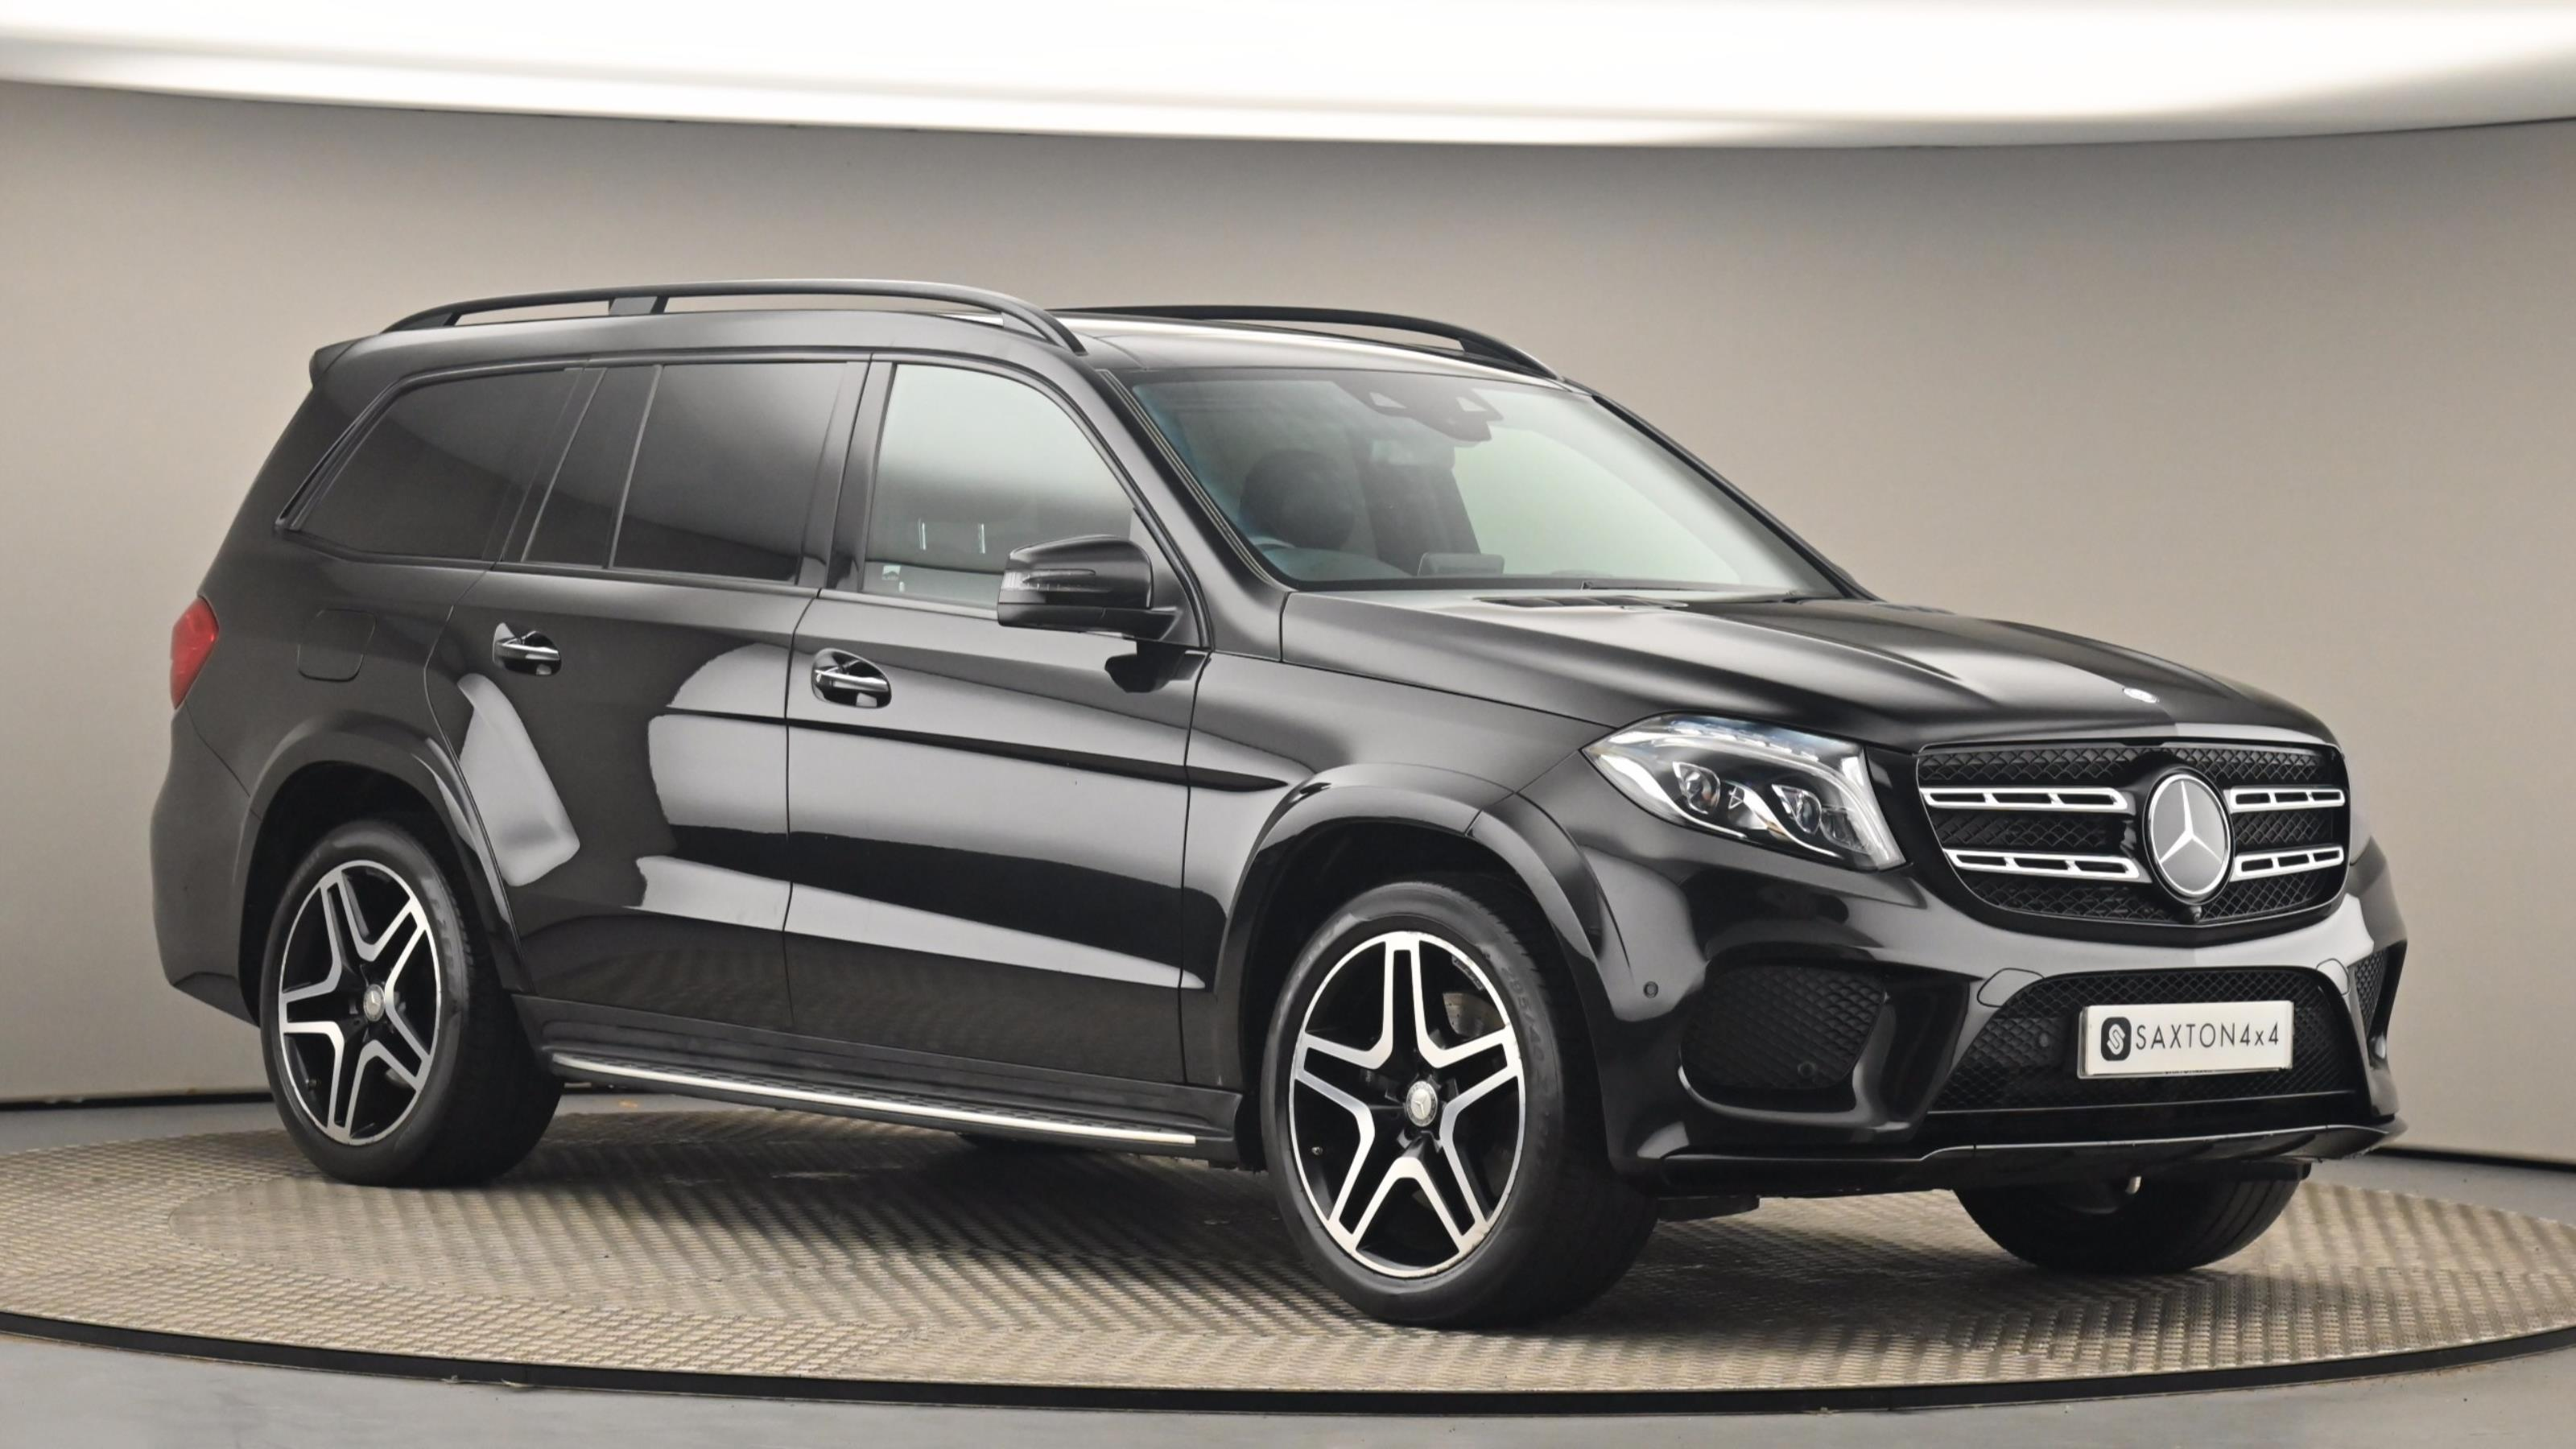 Used 2016 Mercedes-Benz GLS GLS 350d 4Matic AMG Line 5dr 9G-Tronic BLACK at Saxton4x4